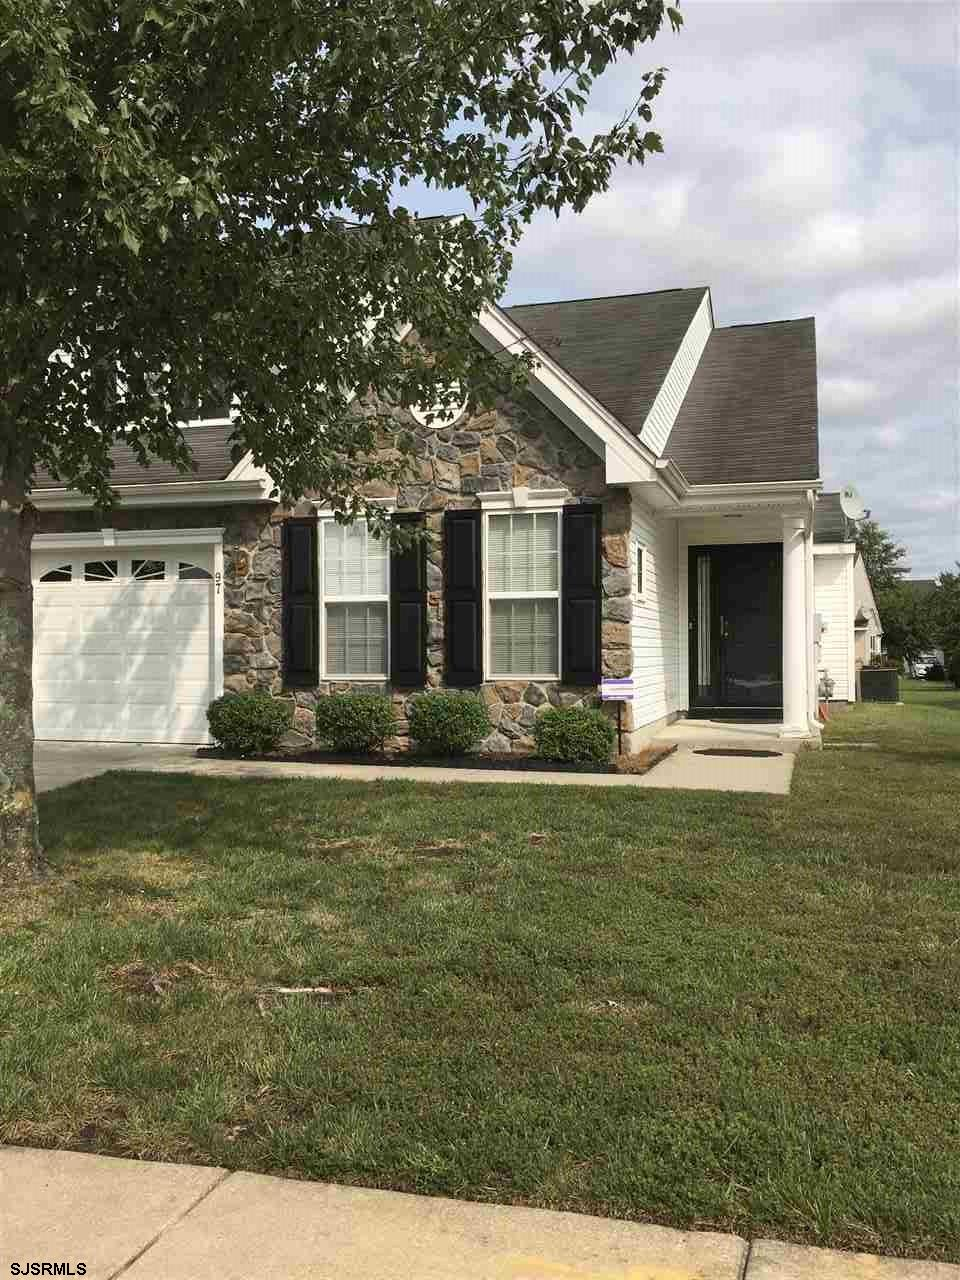 Welcome to this immaculate home located in the very desirable Tavistock Adult Community. There are beautiful hardwood floors throughout, the kitchen has newer appliances and upgraded countertops. There is a large living room and dining room combination and a sun room which overlooks the backyard. The master BD is a nice size and has a large walk in closet. There is also a 2nd BD with a full bath on the 1st floor. Upstairs has a large 3rd BD/loft and a huge walk in closet. This will not last long, and easy to show! HOA includes lawn mowing, snow removal and use of the clubhouse.